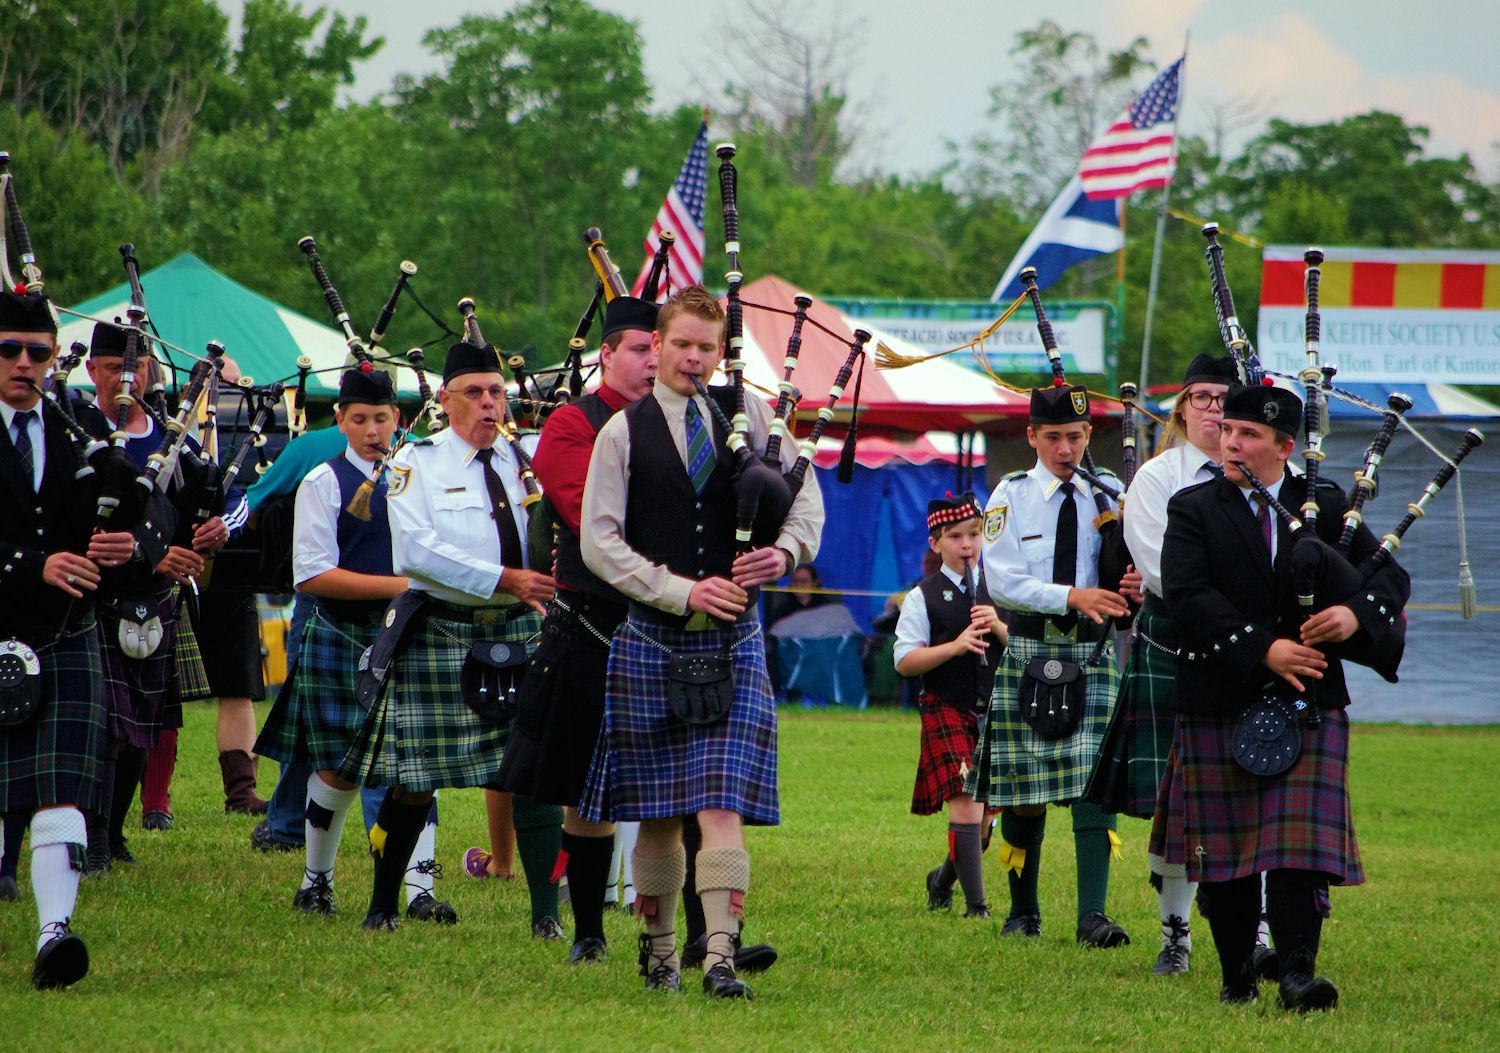 Bagpipes at Grandfather Mountain Highland Games in the